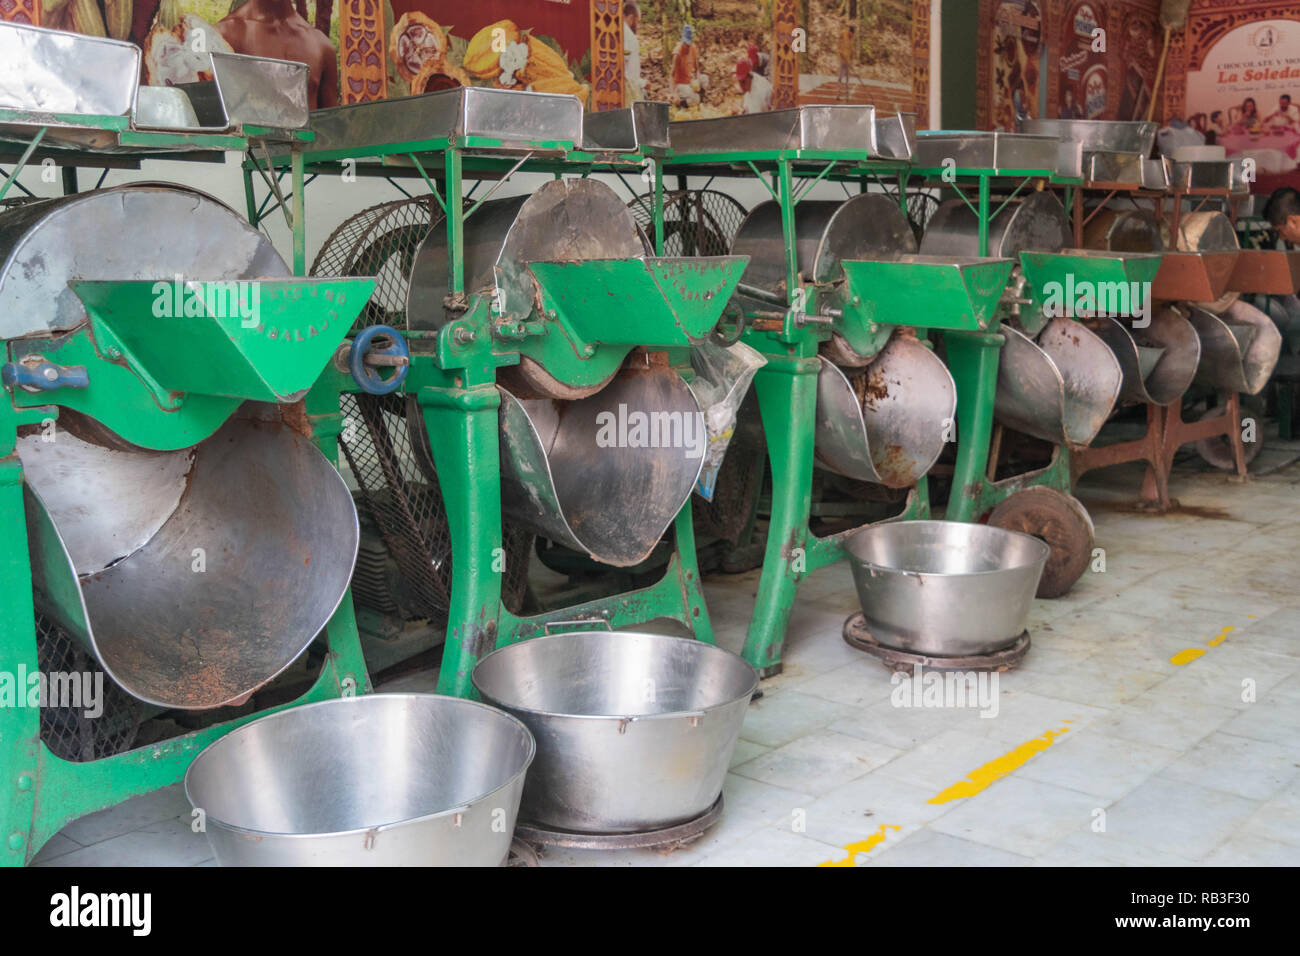 A row of metal cacao roasters with metal catching bowls on the ground, in Oaxaca, Mexico - Stock Image